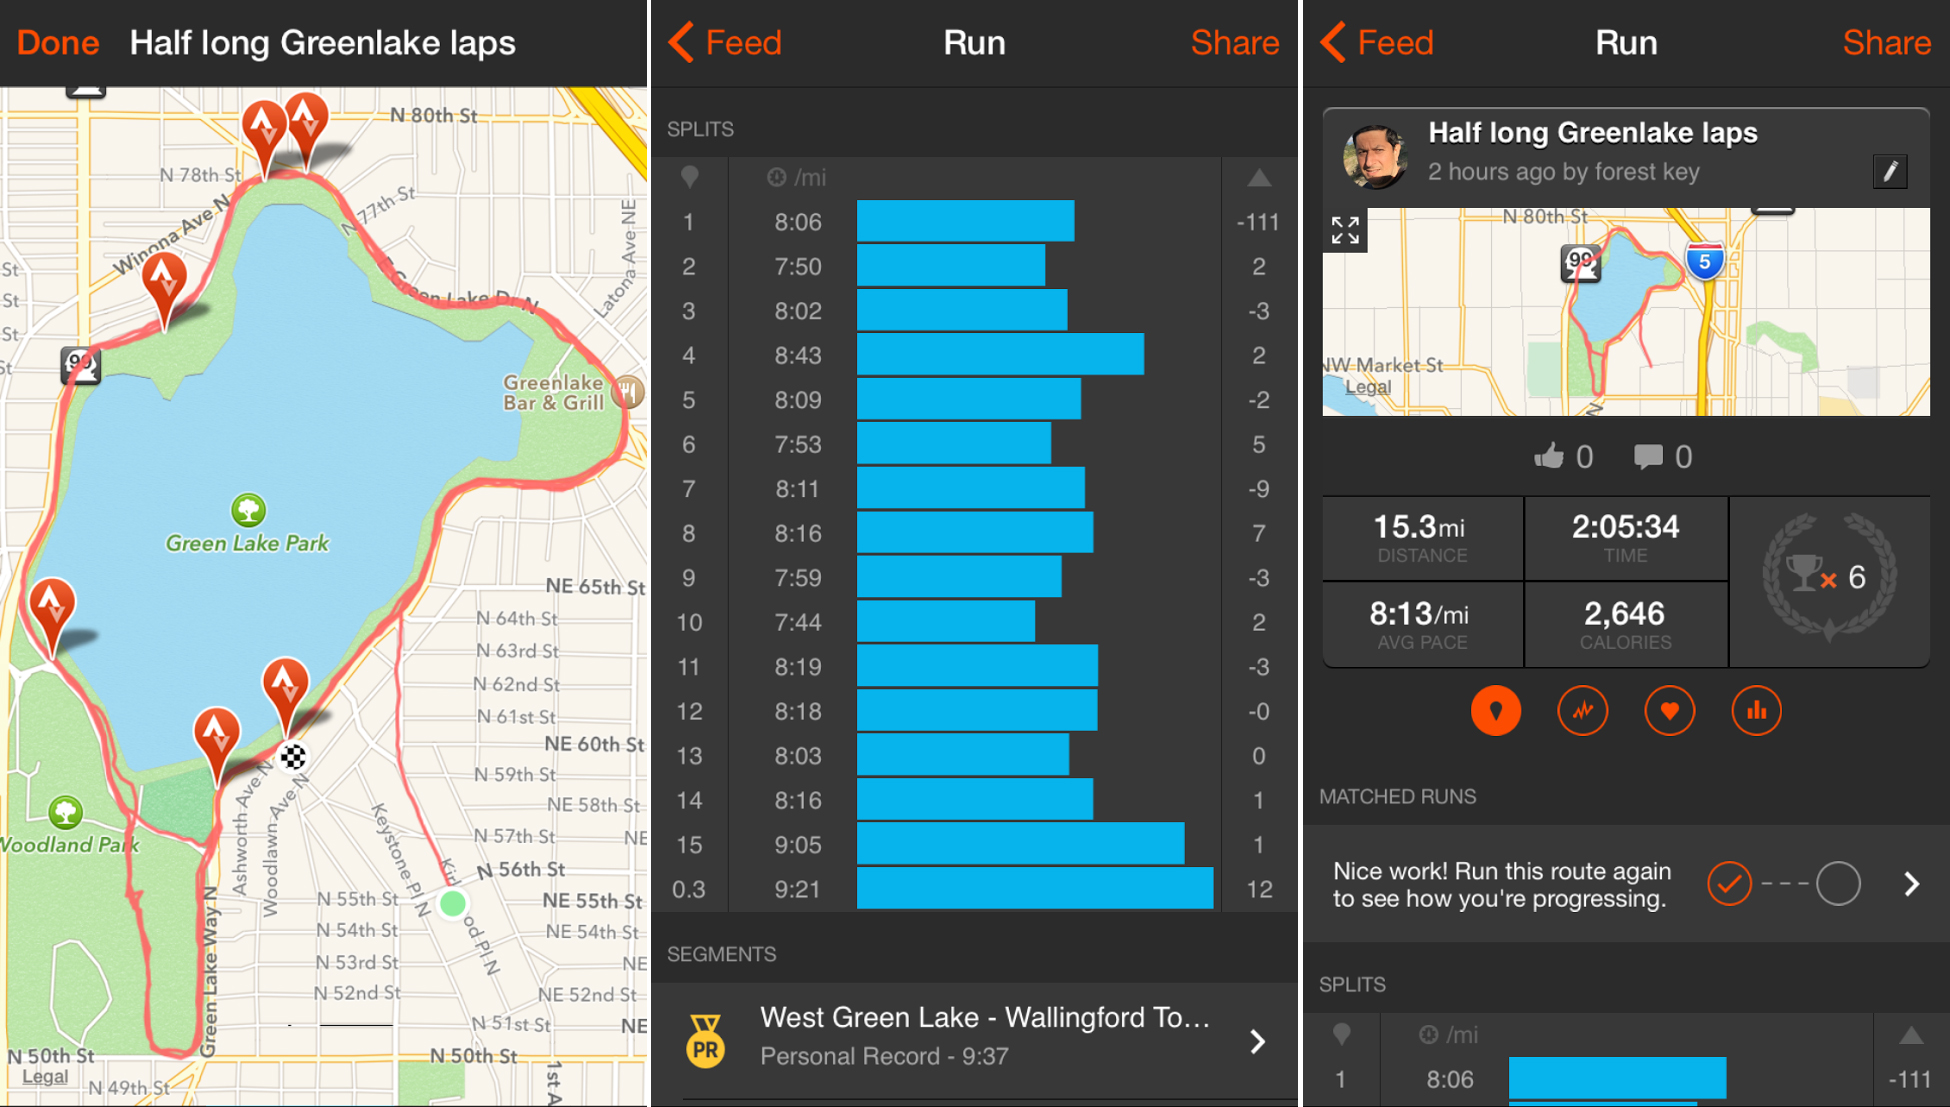 Strava and FitBit Surge ther / Review of Fitbit Surge ... on light magnifier app, running app, map with legend scale title, mio heart monitor app, alarm clock plus app, star chart app, gym hero app, cyclemeter heart app, spark people app, gain fitness app, keeper app,